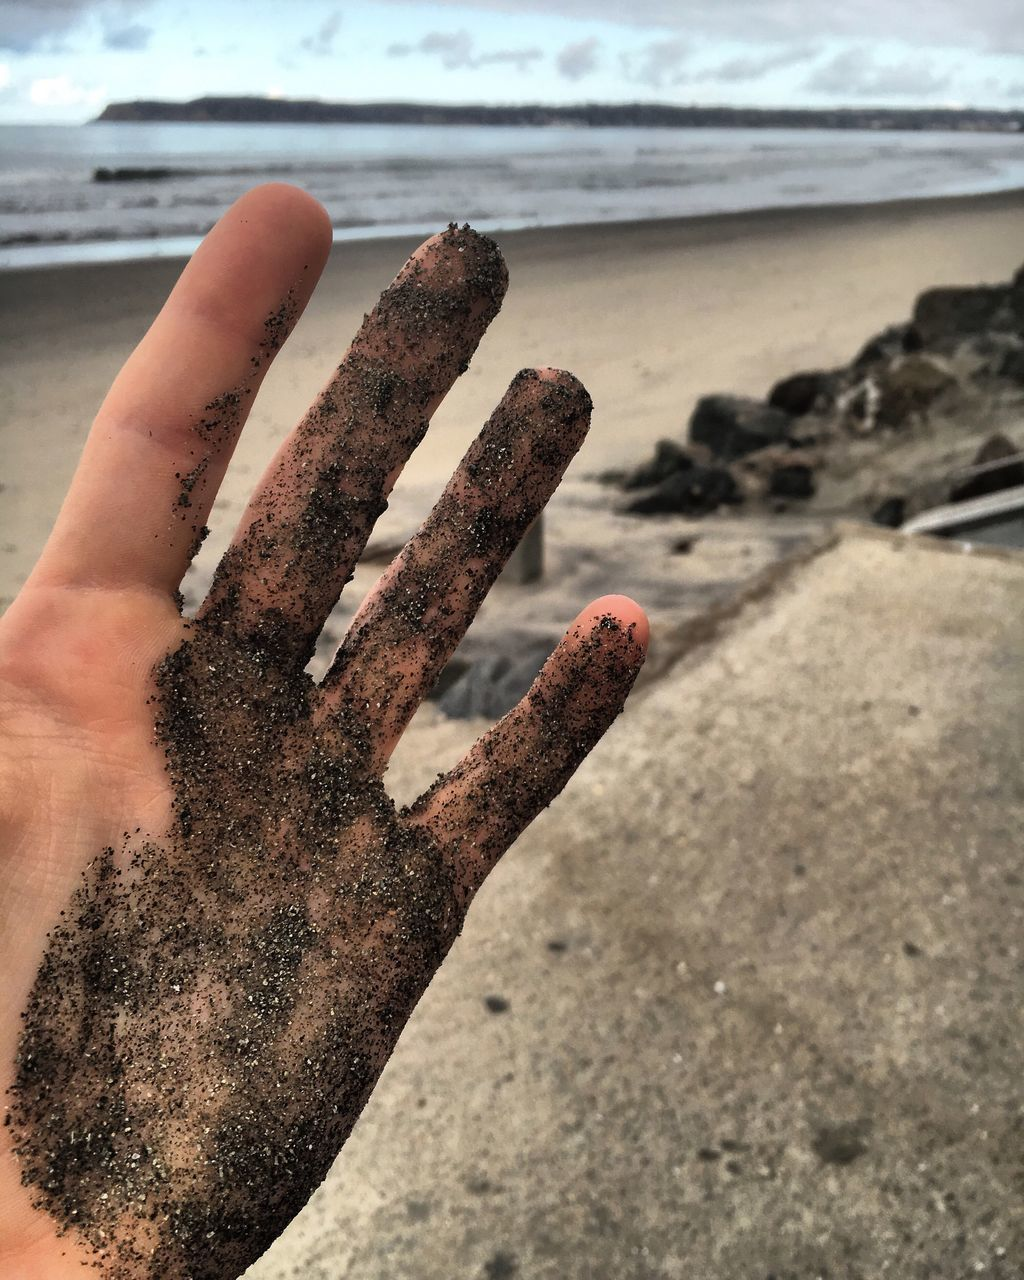 human hand, beach, human body part, one person, sand, shore, sea, focus on foreground, close-up, outdoors, real people, day, horizon over water, nature, water, sky, people